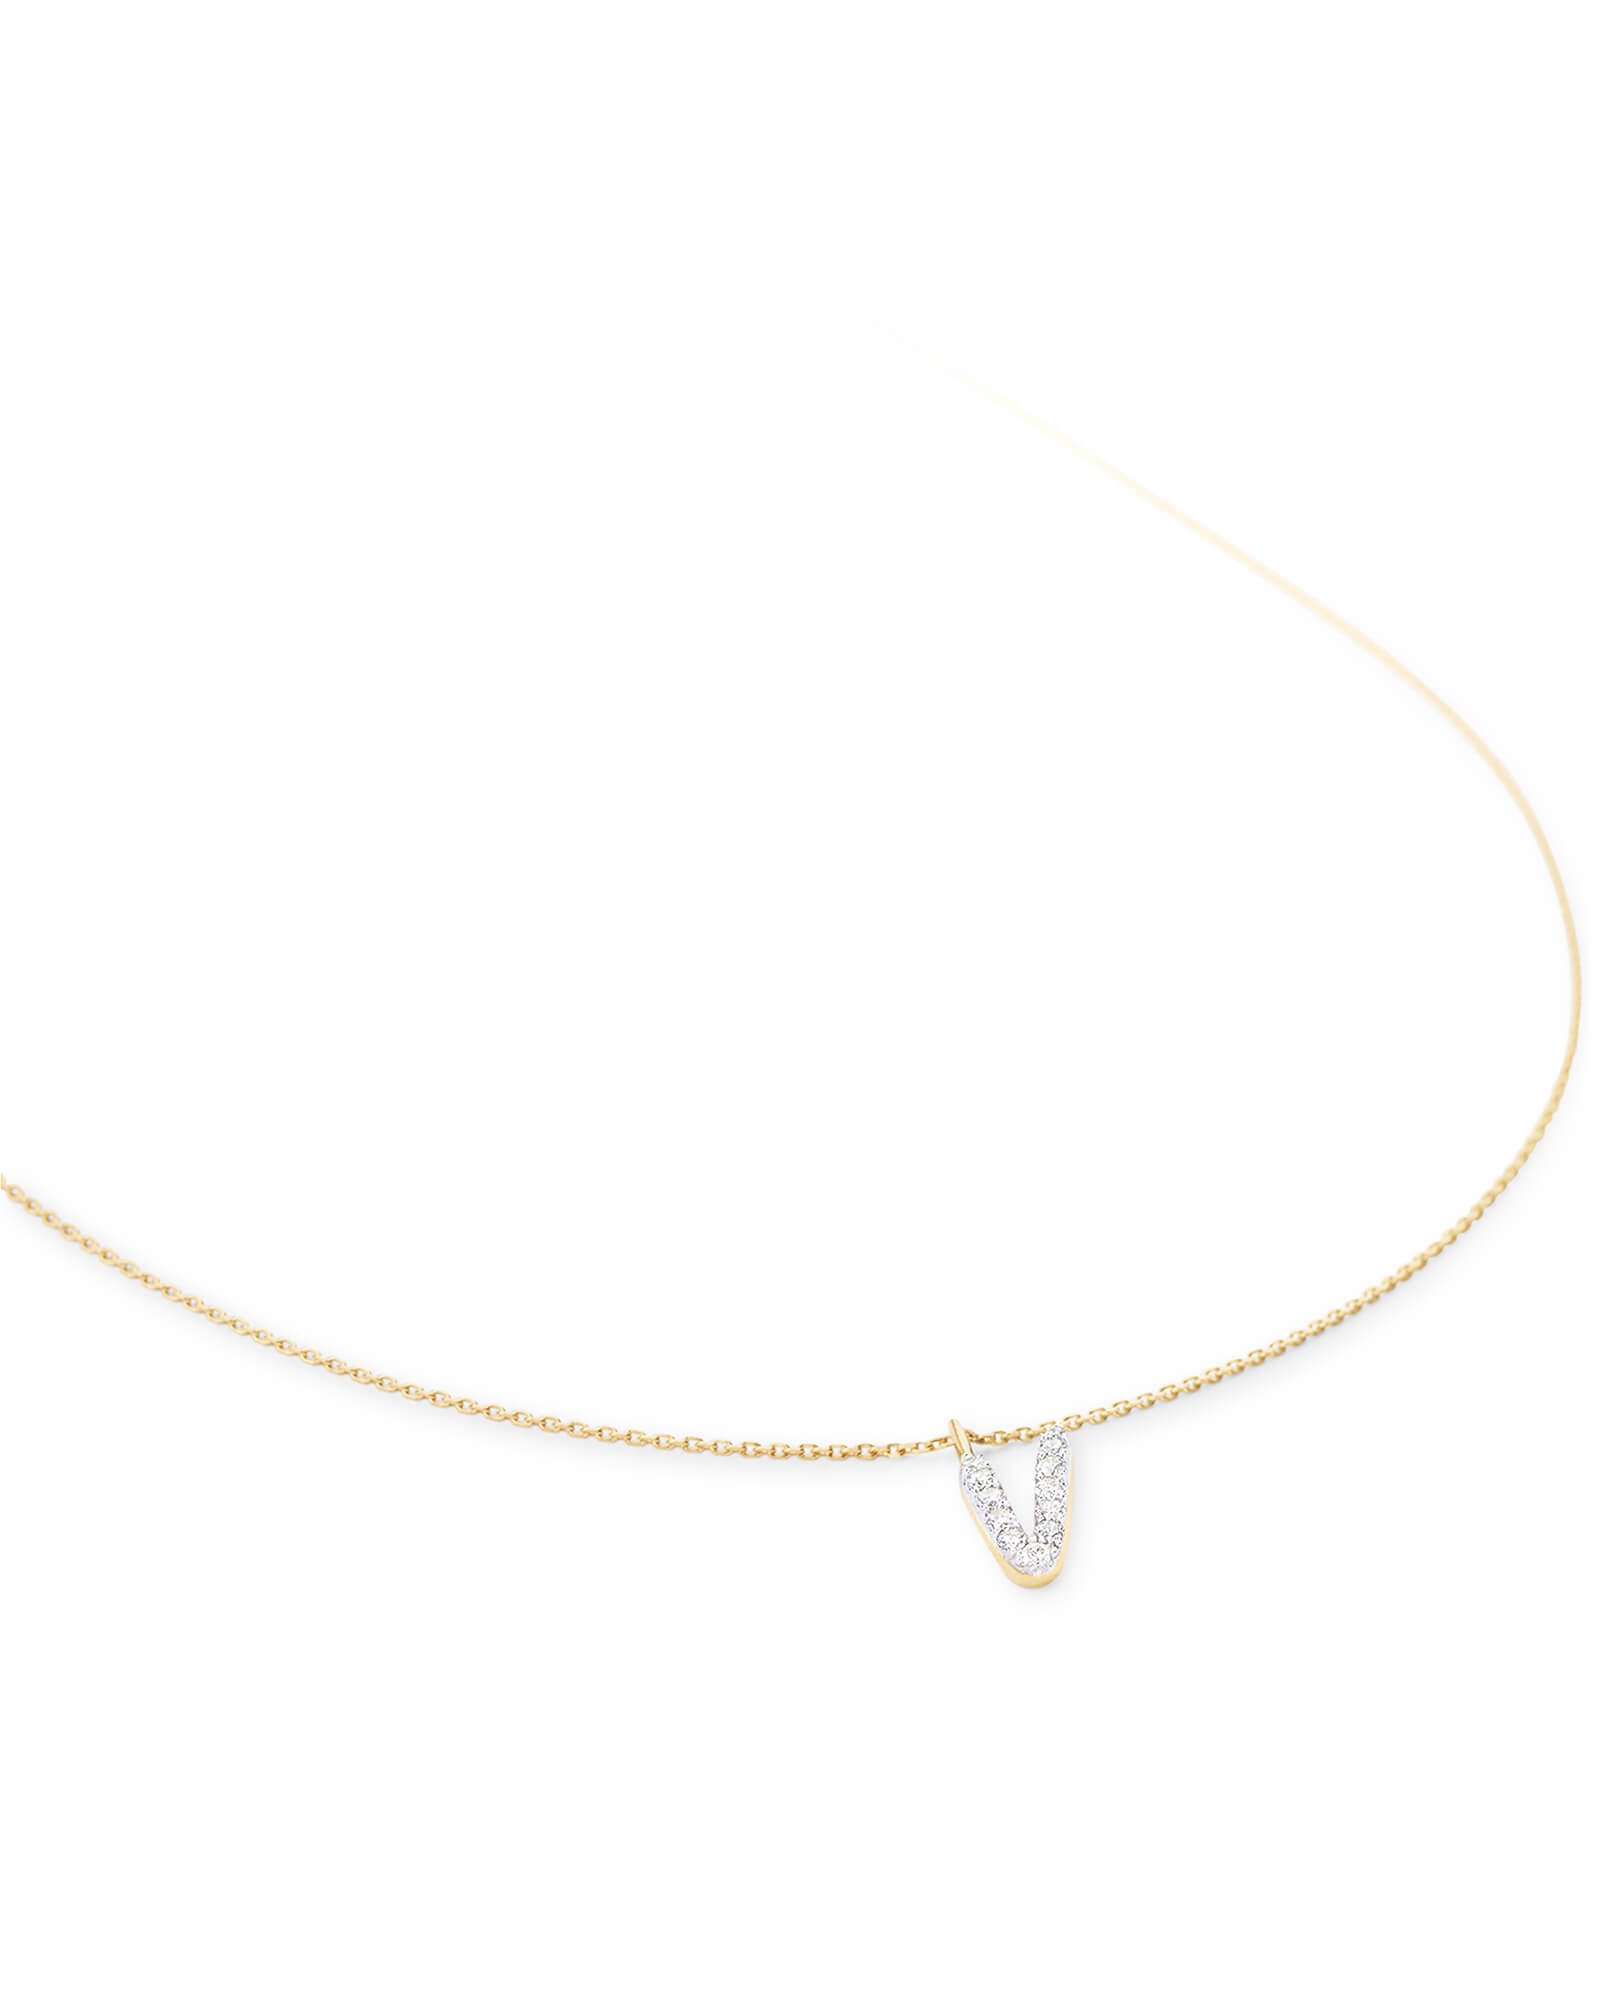 Diamond Letter V Pendant Necklace in 14K Yellow Gold